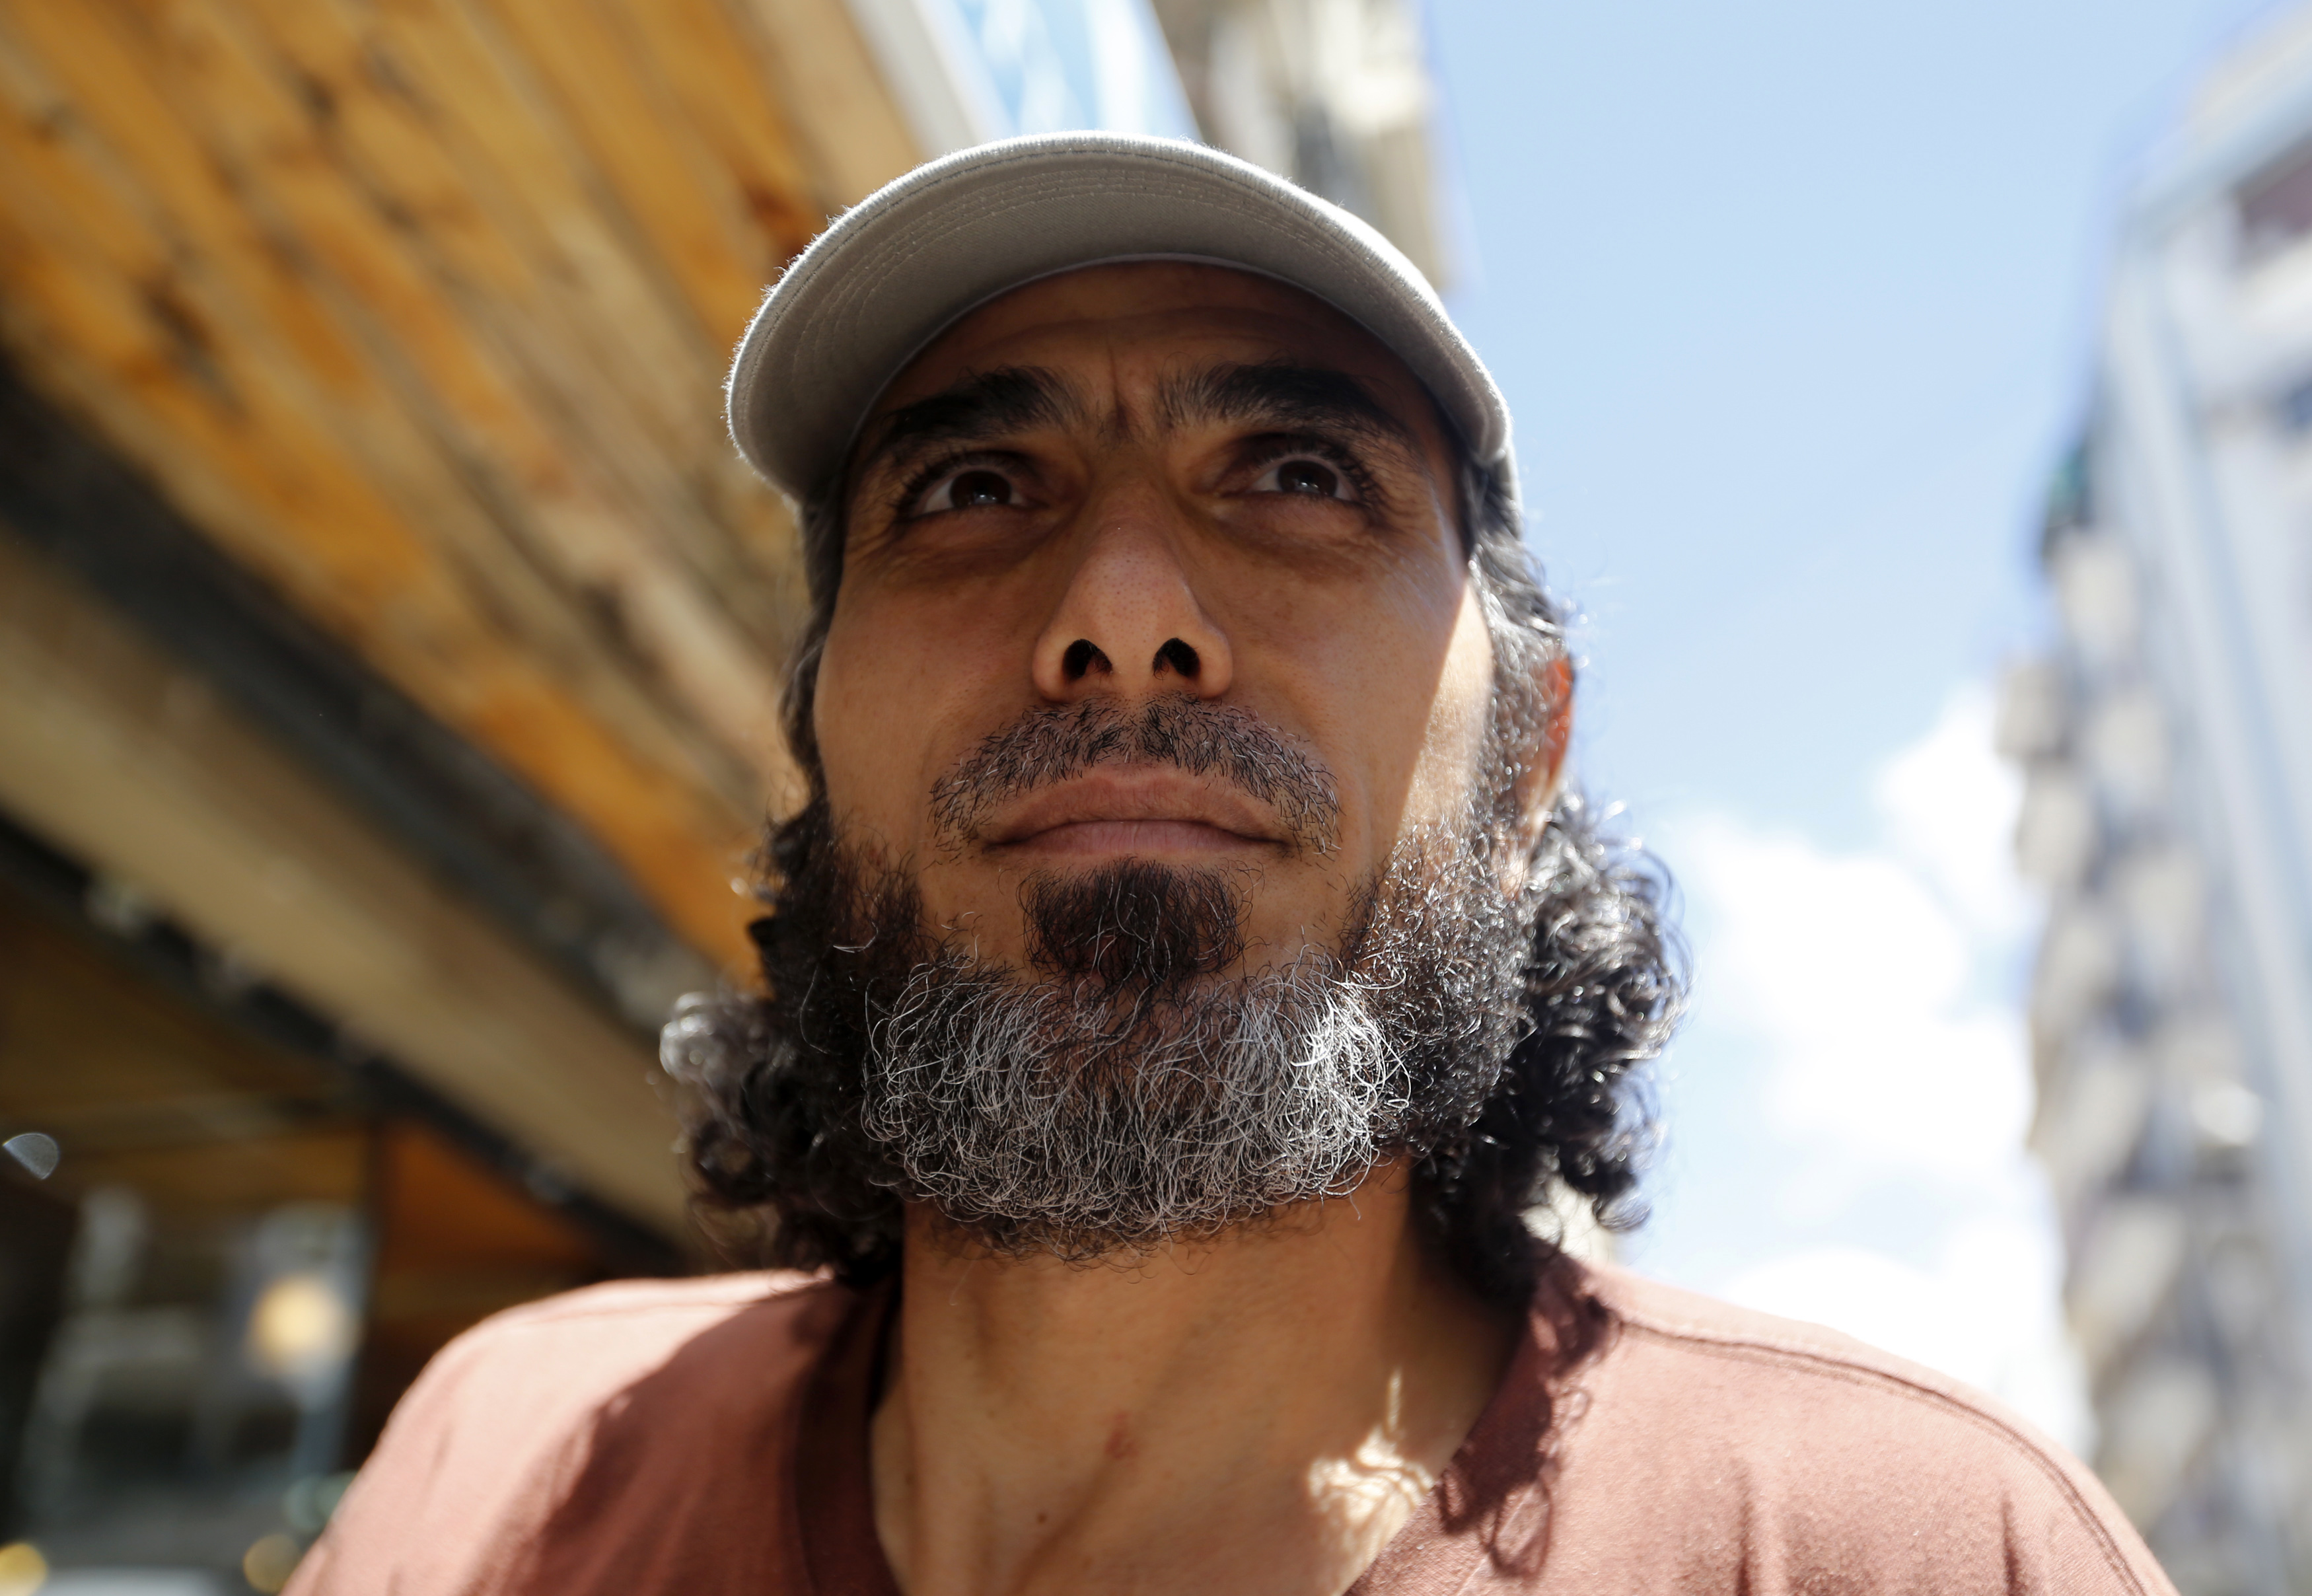 Former Guantánamo Bay detainee Abu Wa'el Dhiab looks on as he arrives for an interview in Buenos Aires on Feb. 13, 2015.